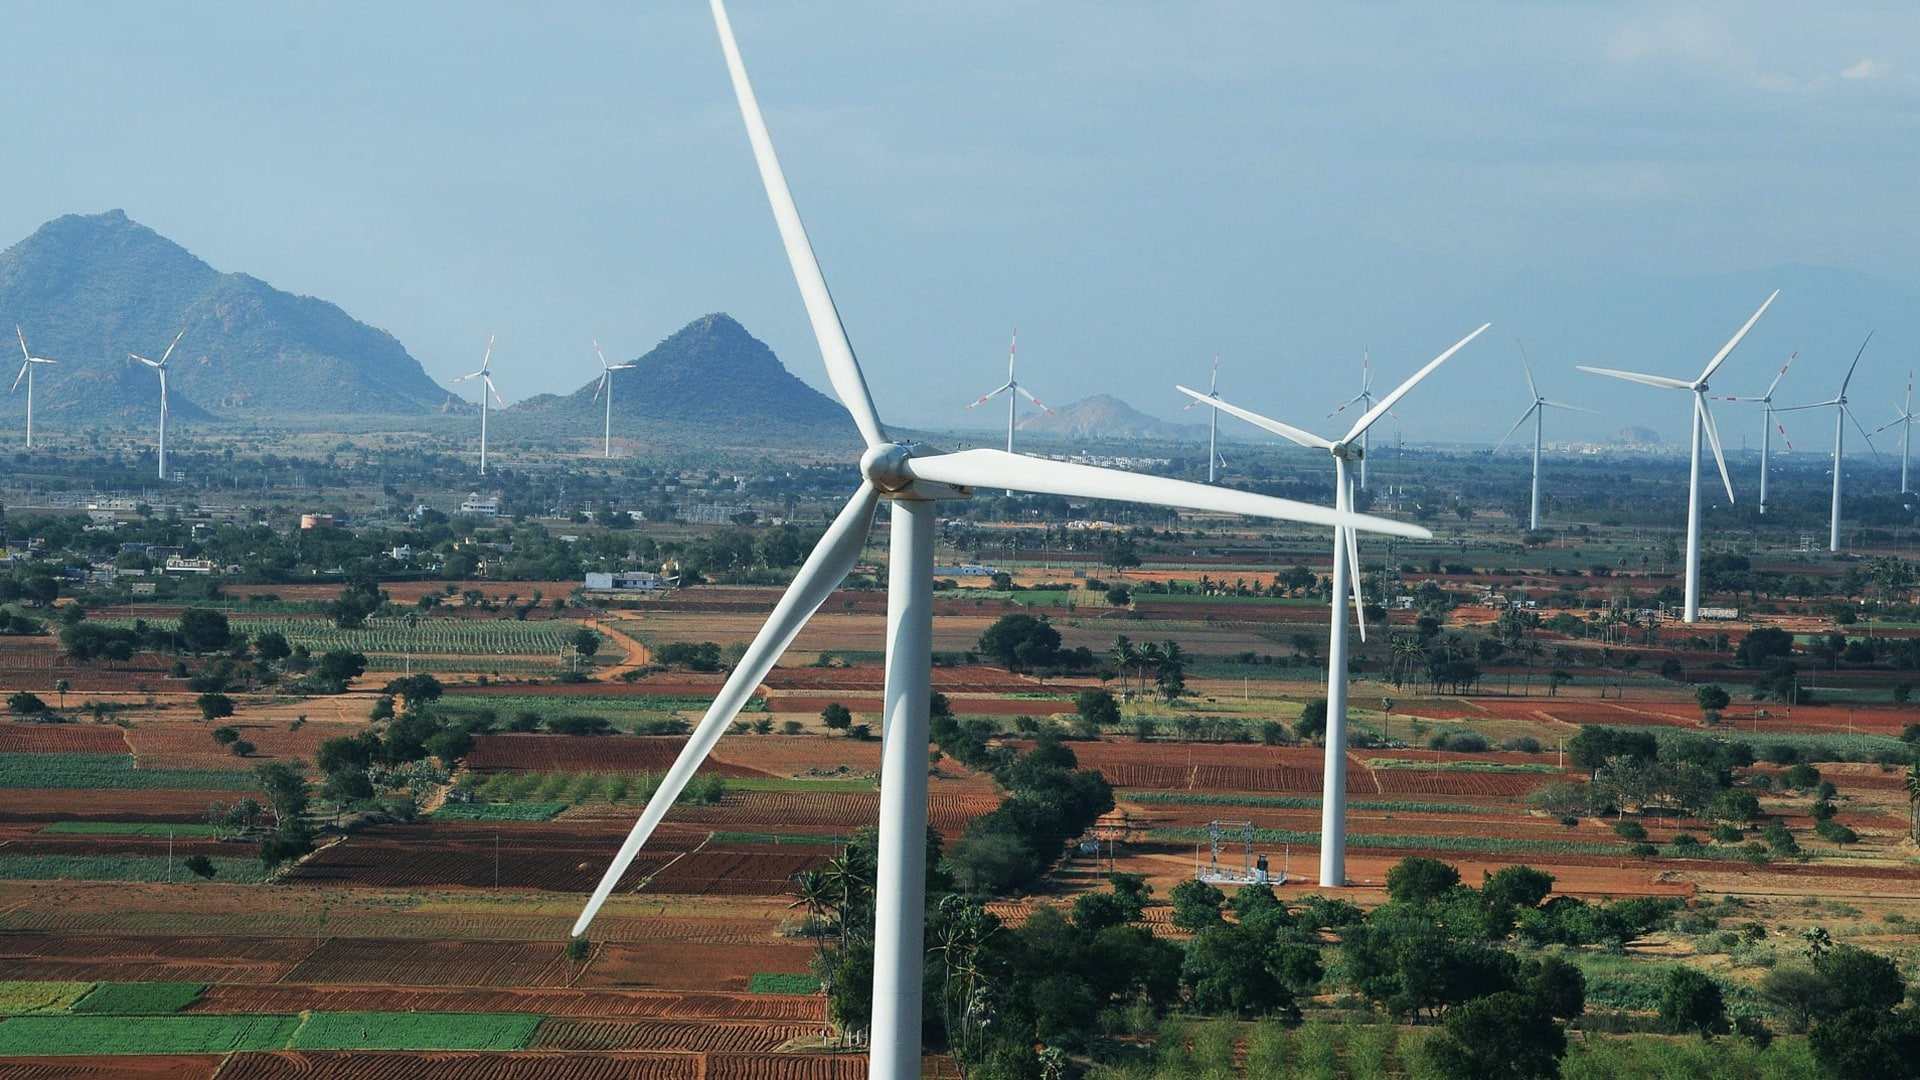 JSW Energy arm signs PPA with Solar Energy Corp for supply of 540 MW wind energy